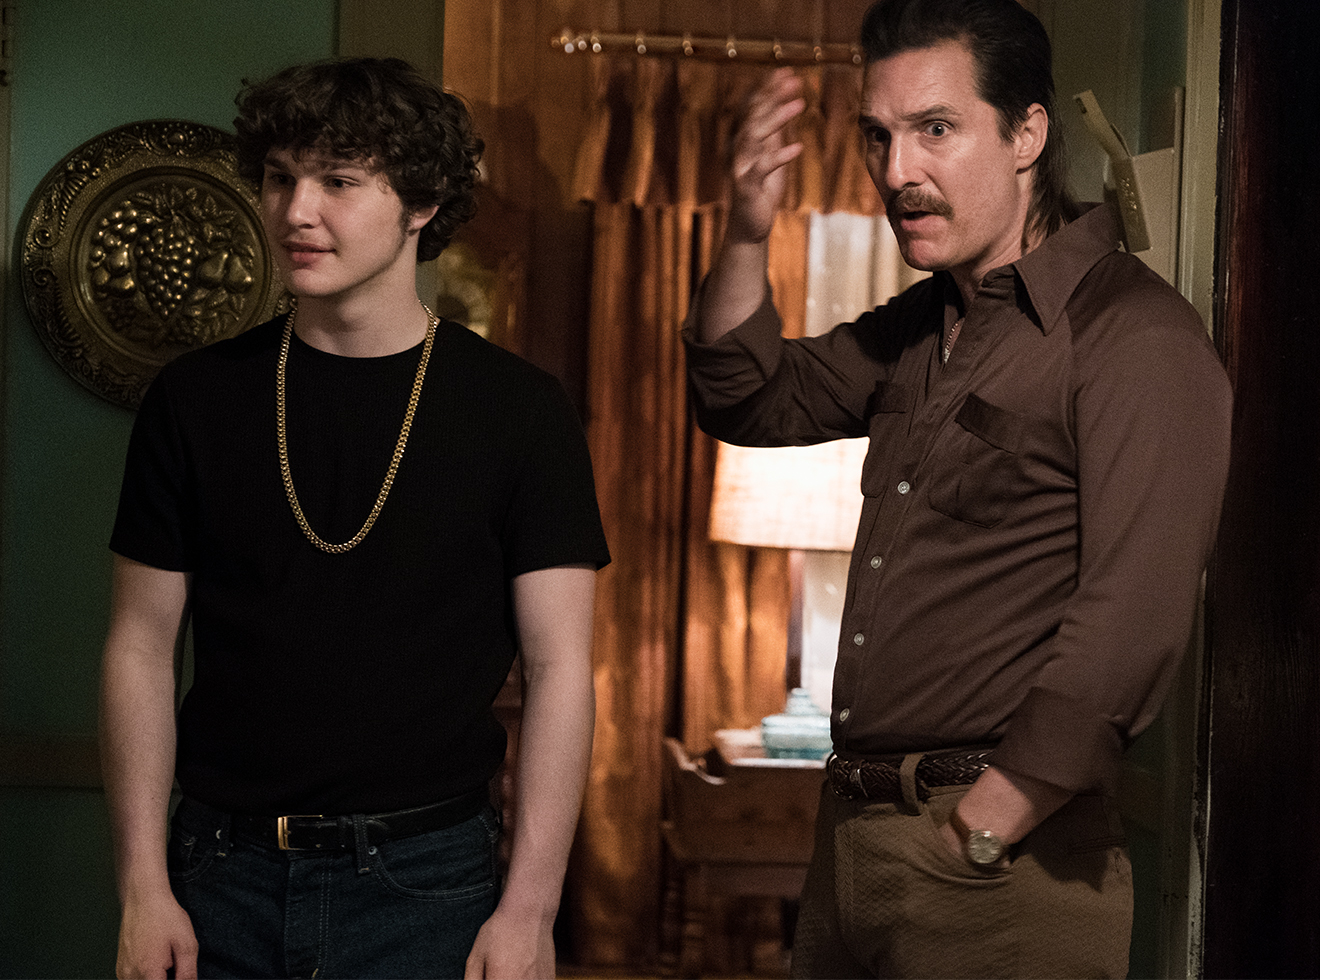 McConaughey and co-star Richie Merritt in White Boy Rick